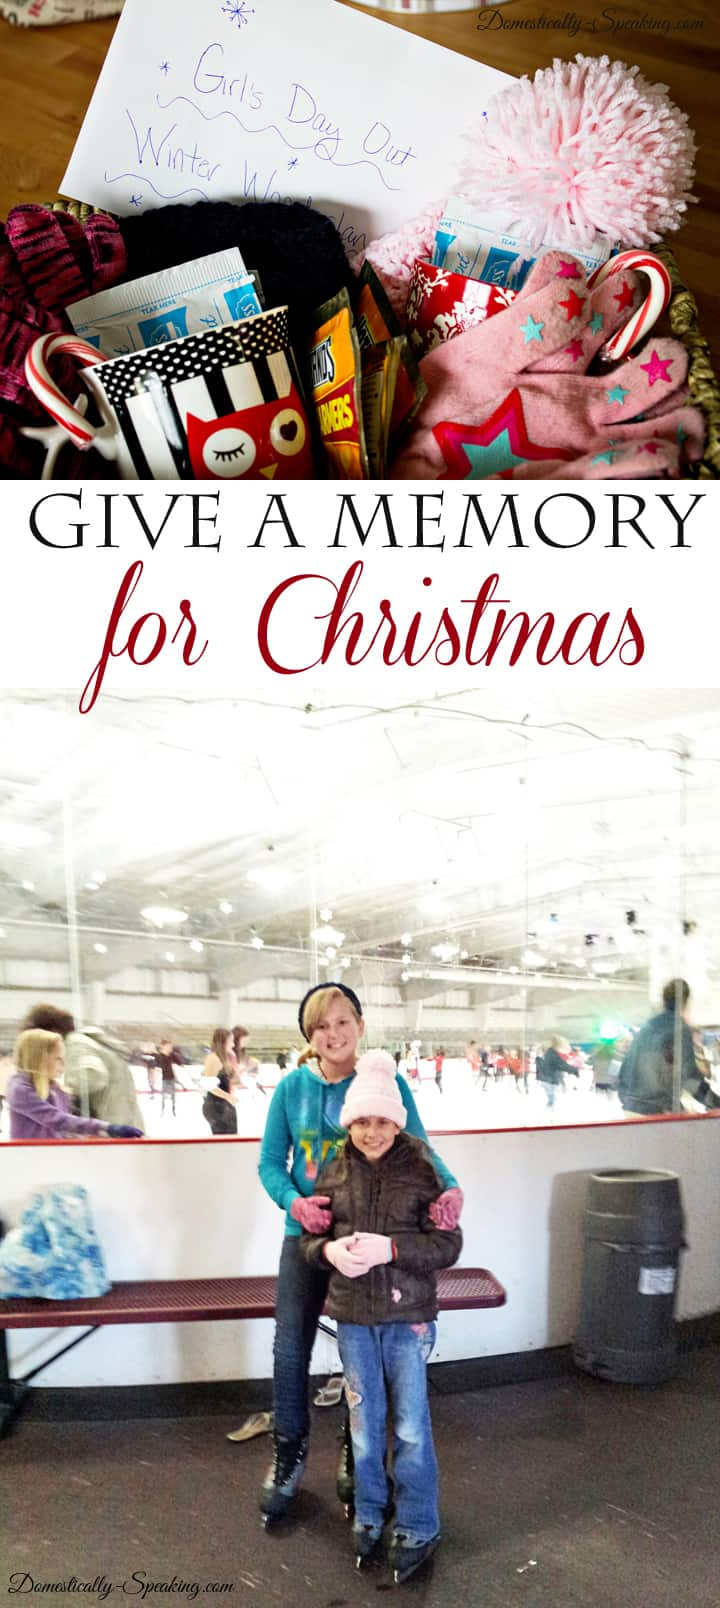 Give a Memories as a Christmas Gift